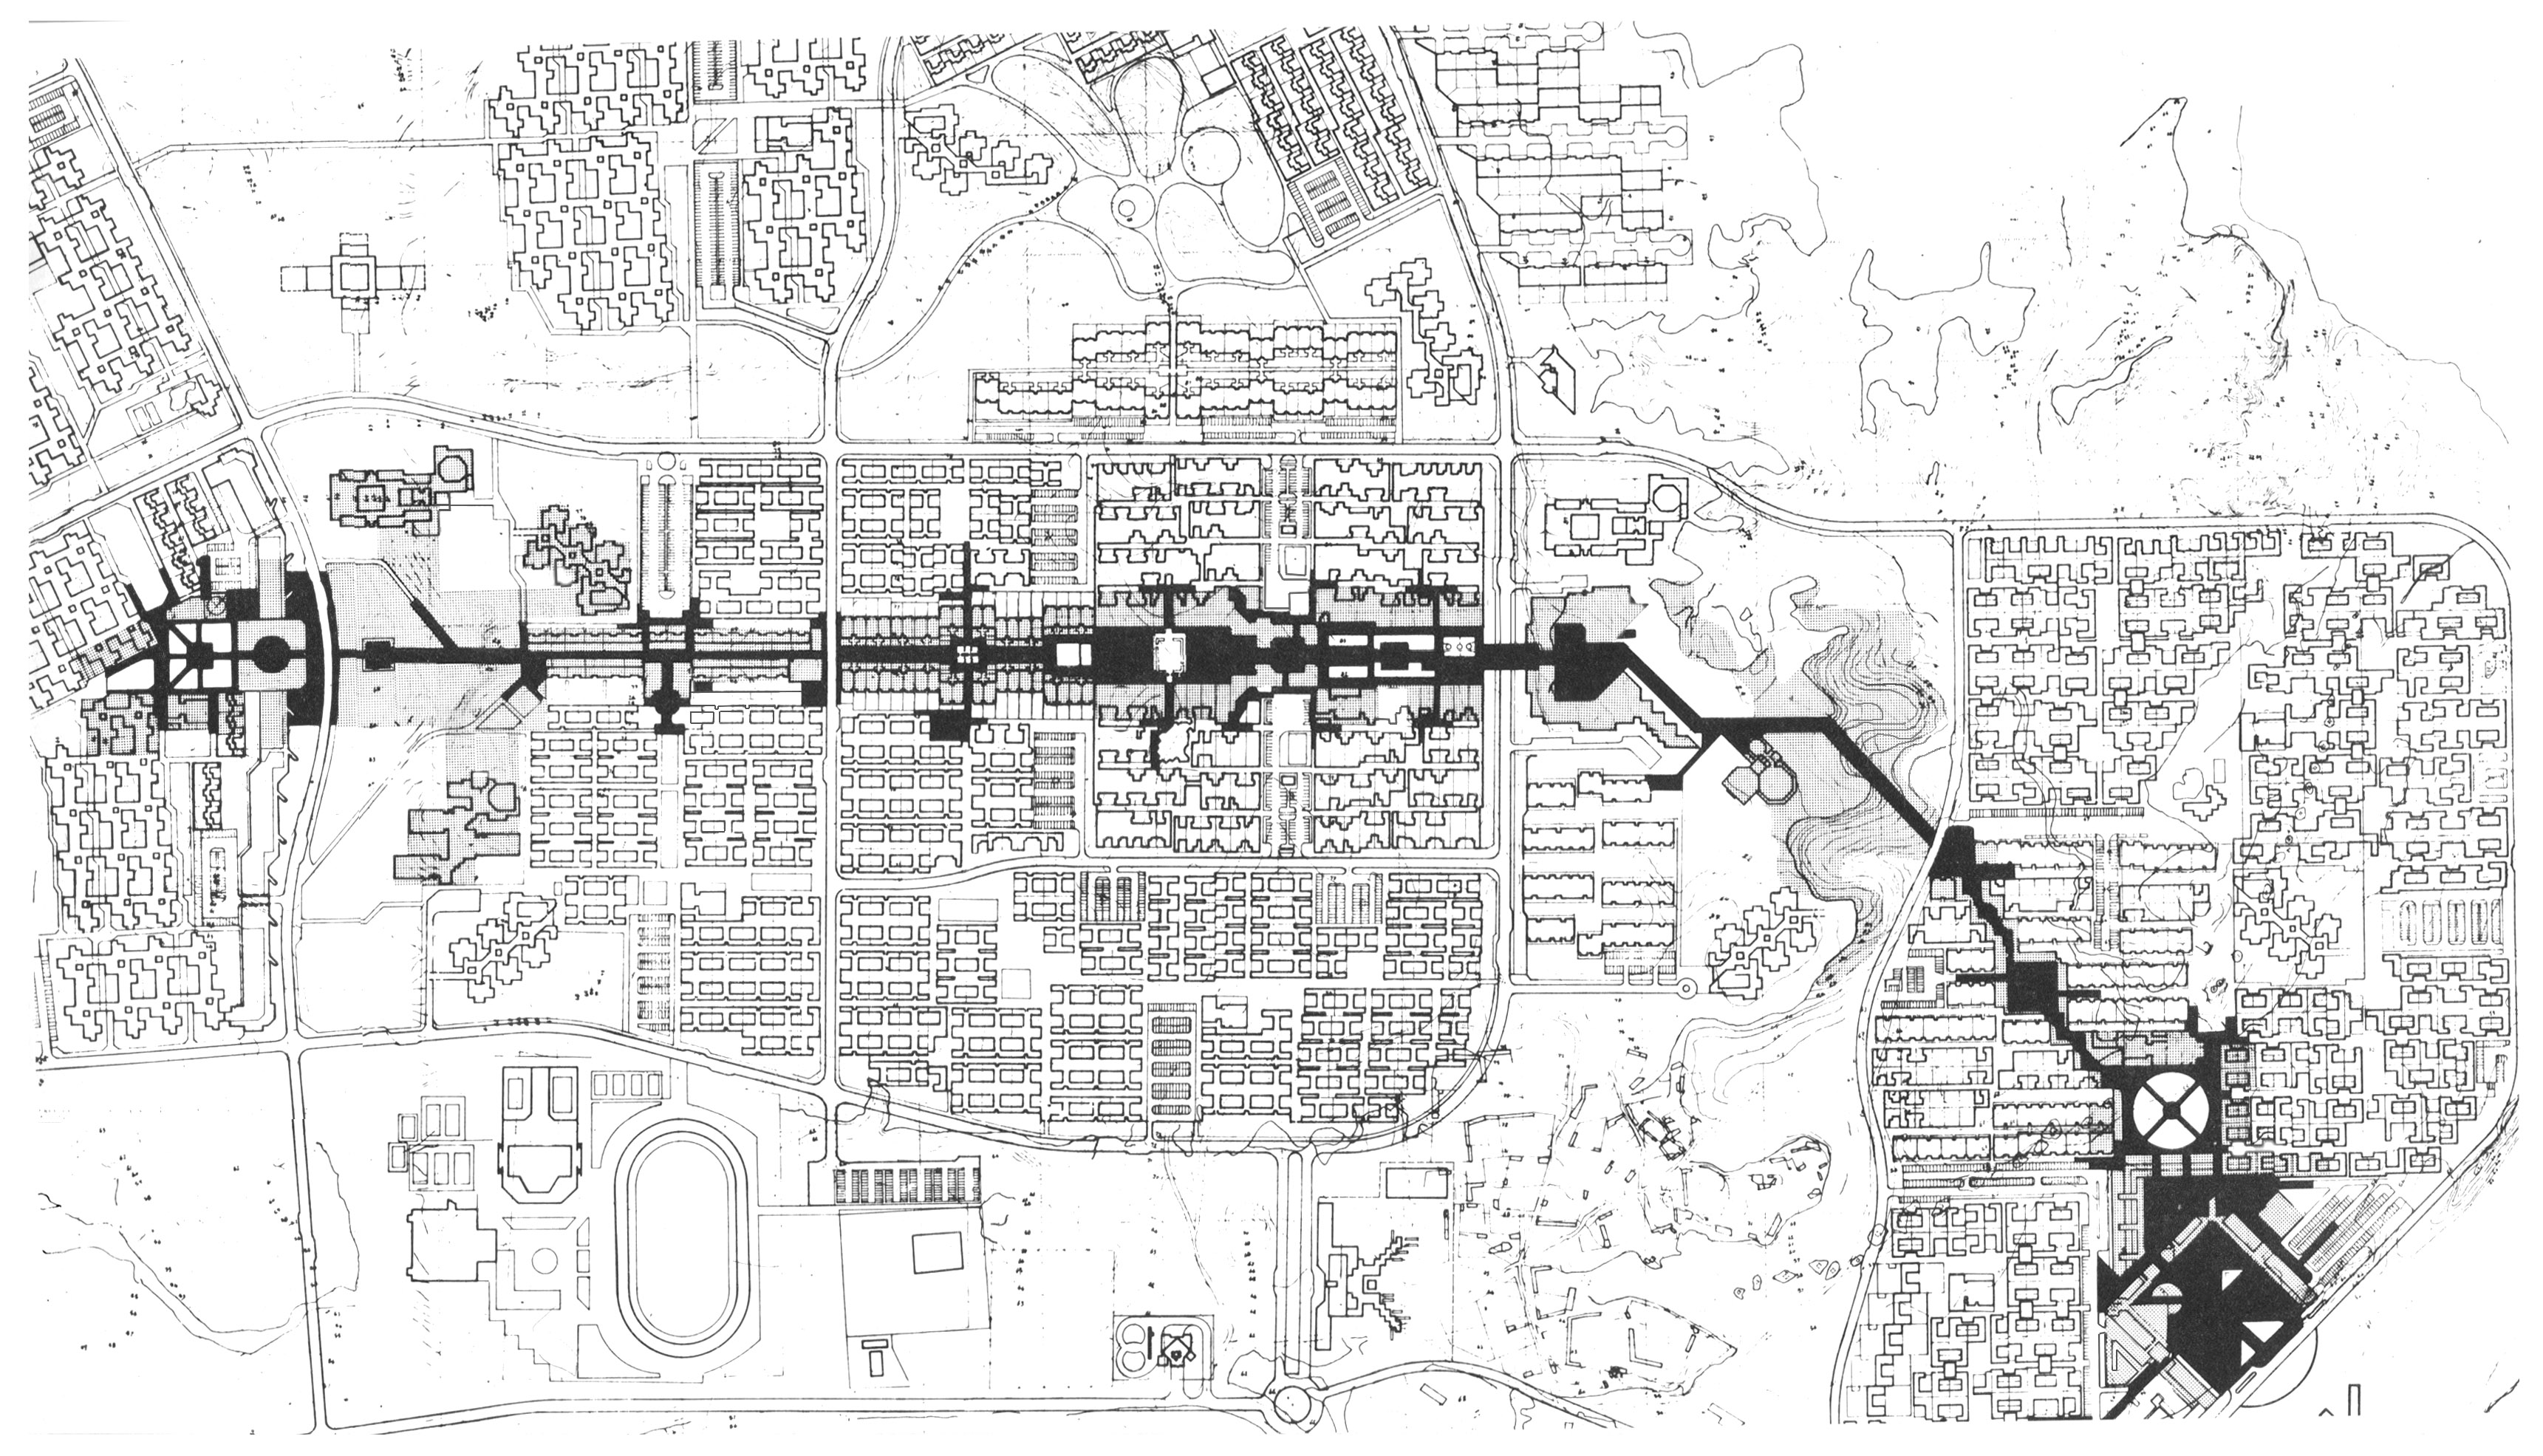 Figure 1, Original Master Plan of Shushtar New Town 1976. Authors, after Kamran Diba and DAZ Architects. 2015